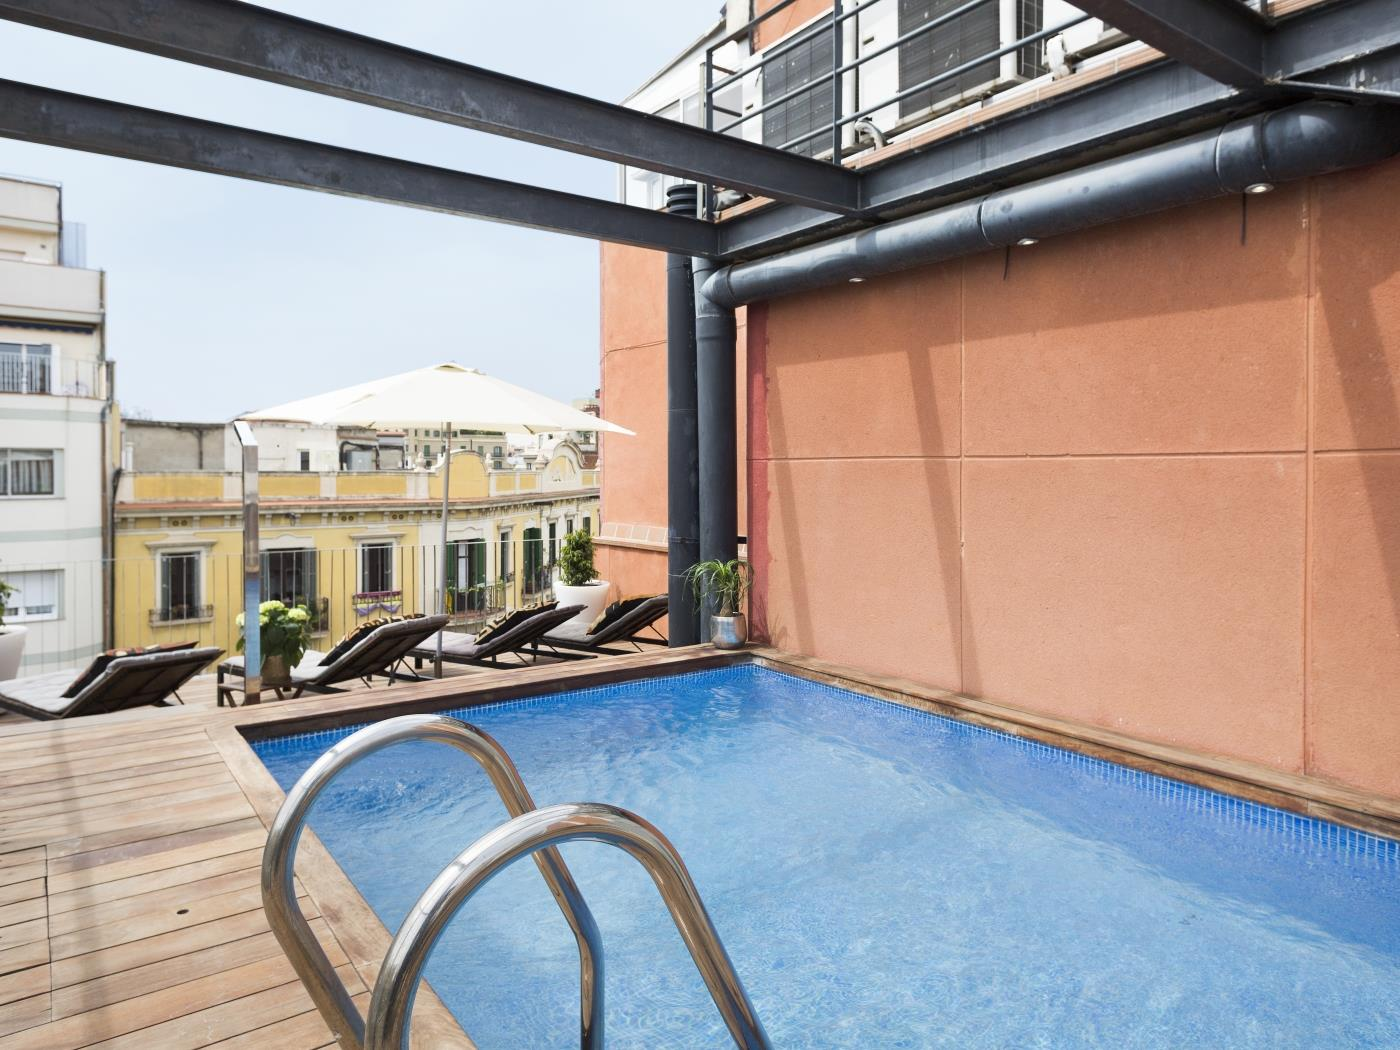 Barcelona Apartment Arc de Triomf with Pool - My Space Barcelona Mieszkanie